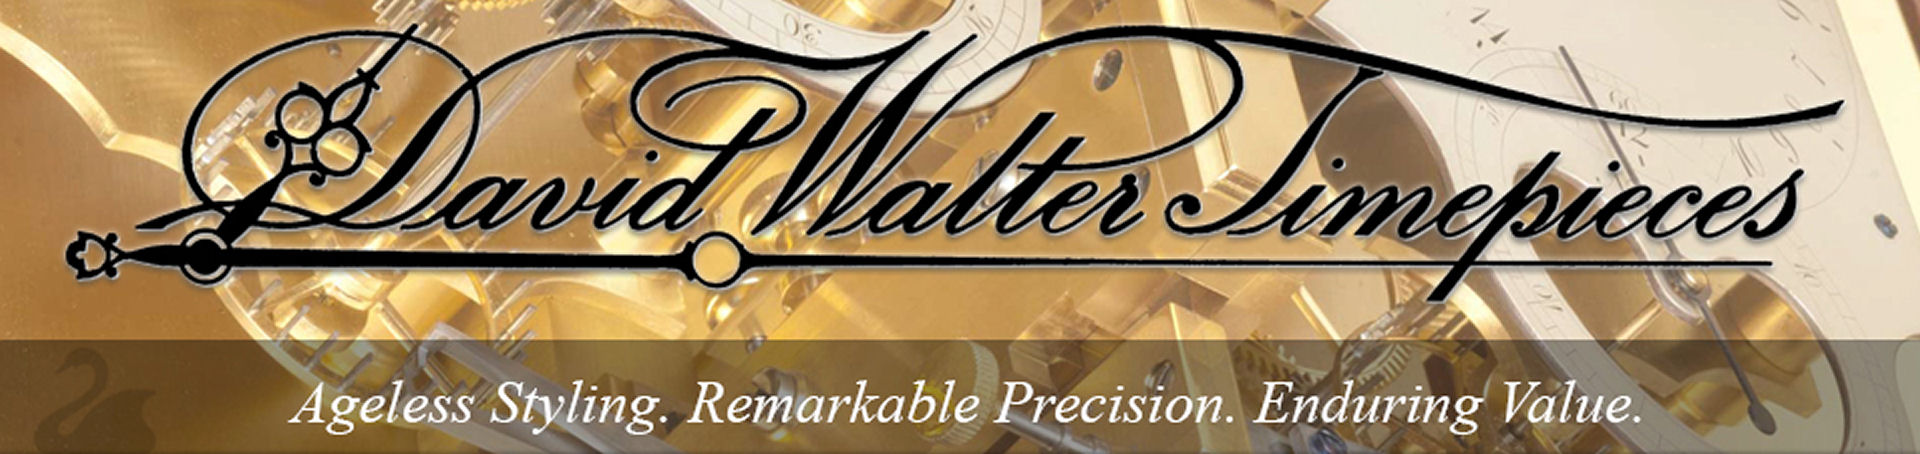 "David Walter Timpieces | The World""s Greatest Living ClockMaker"